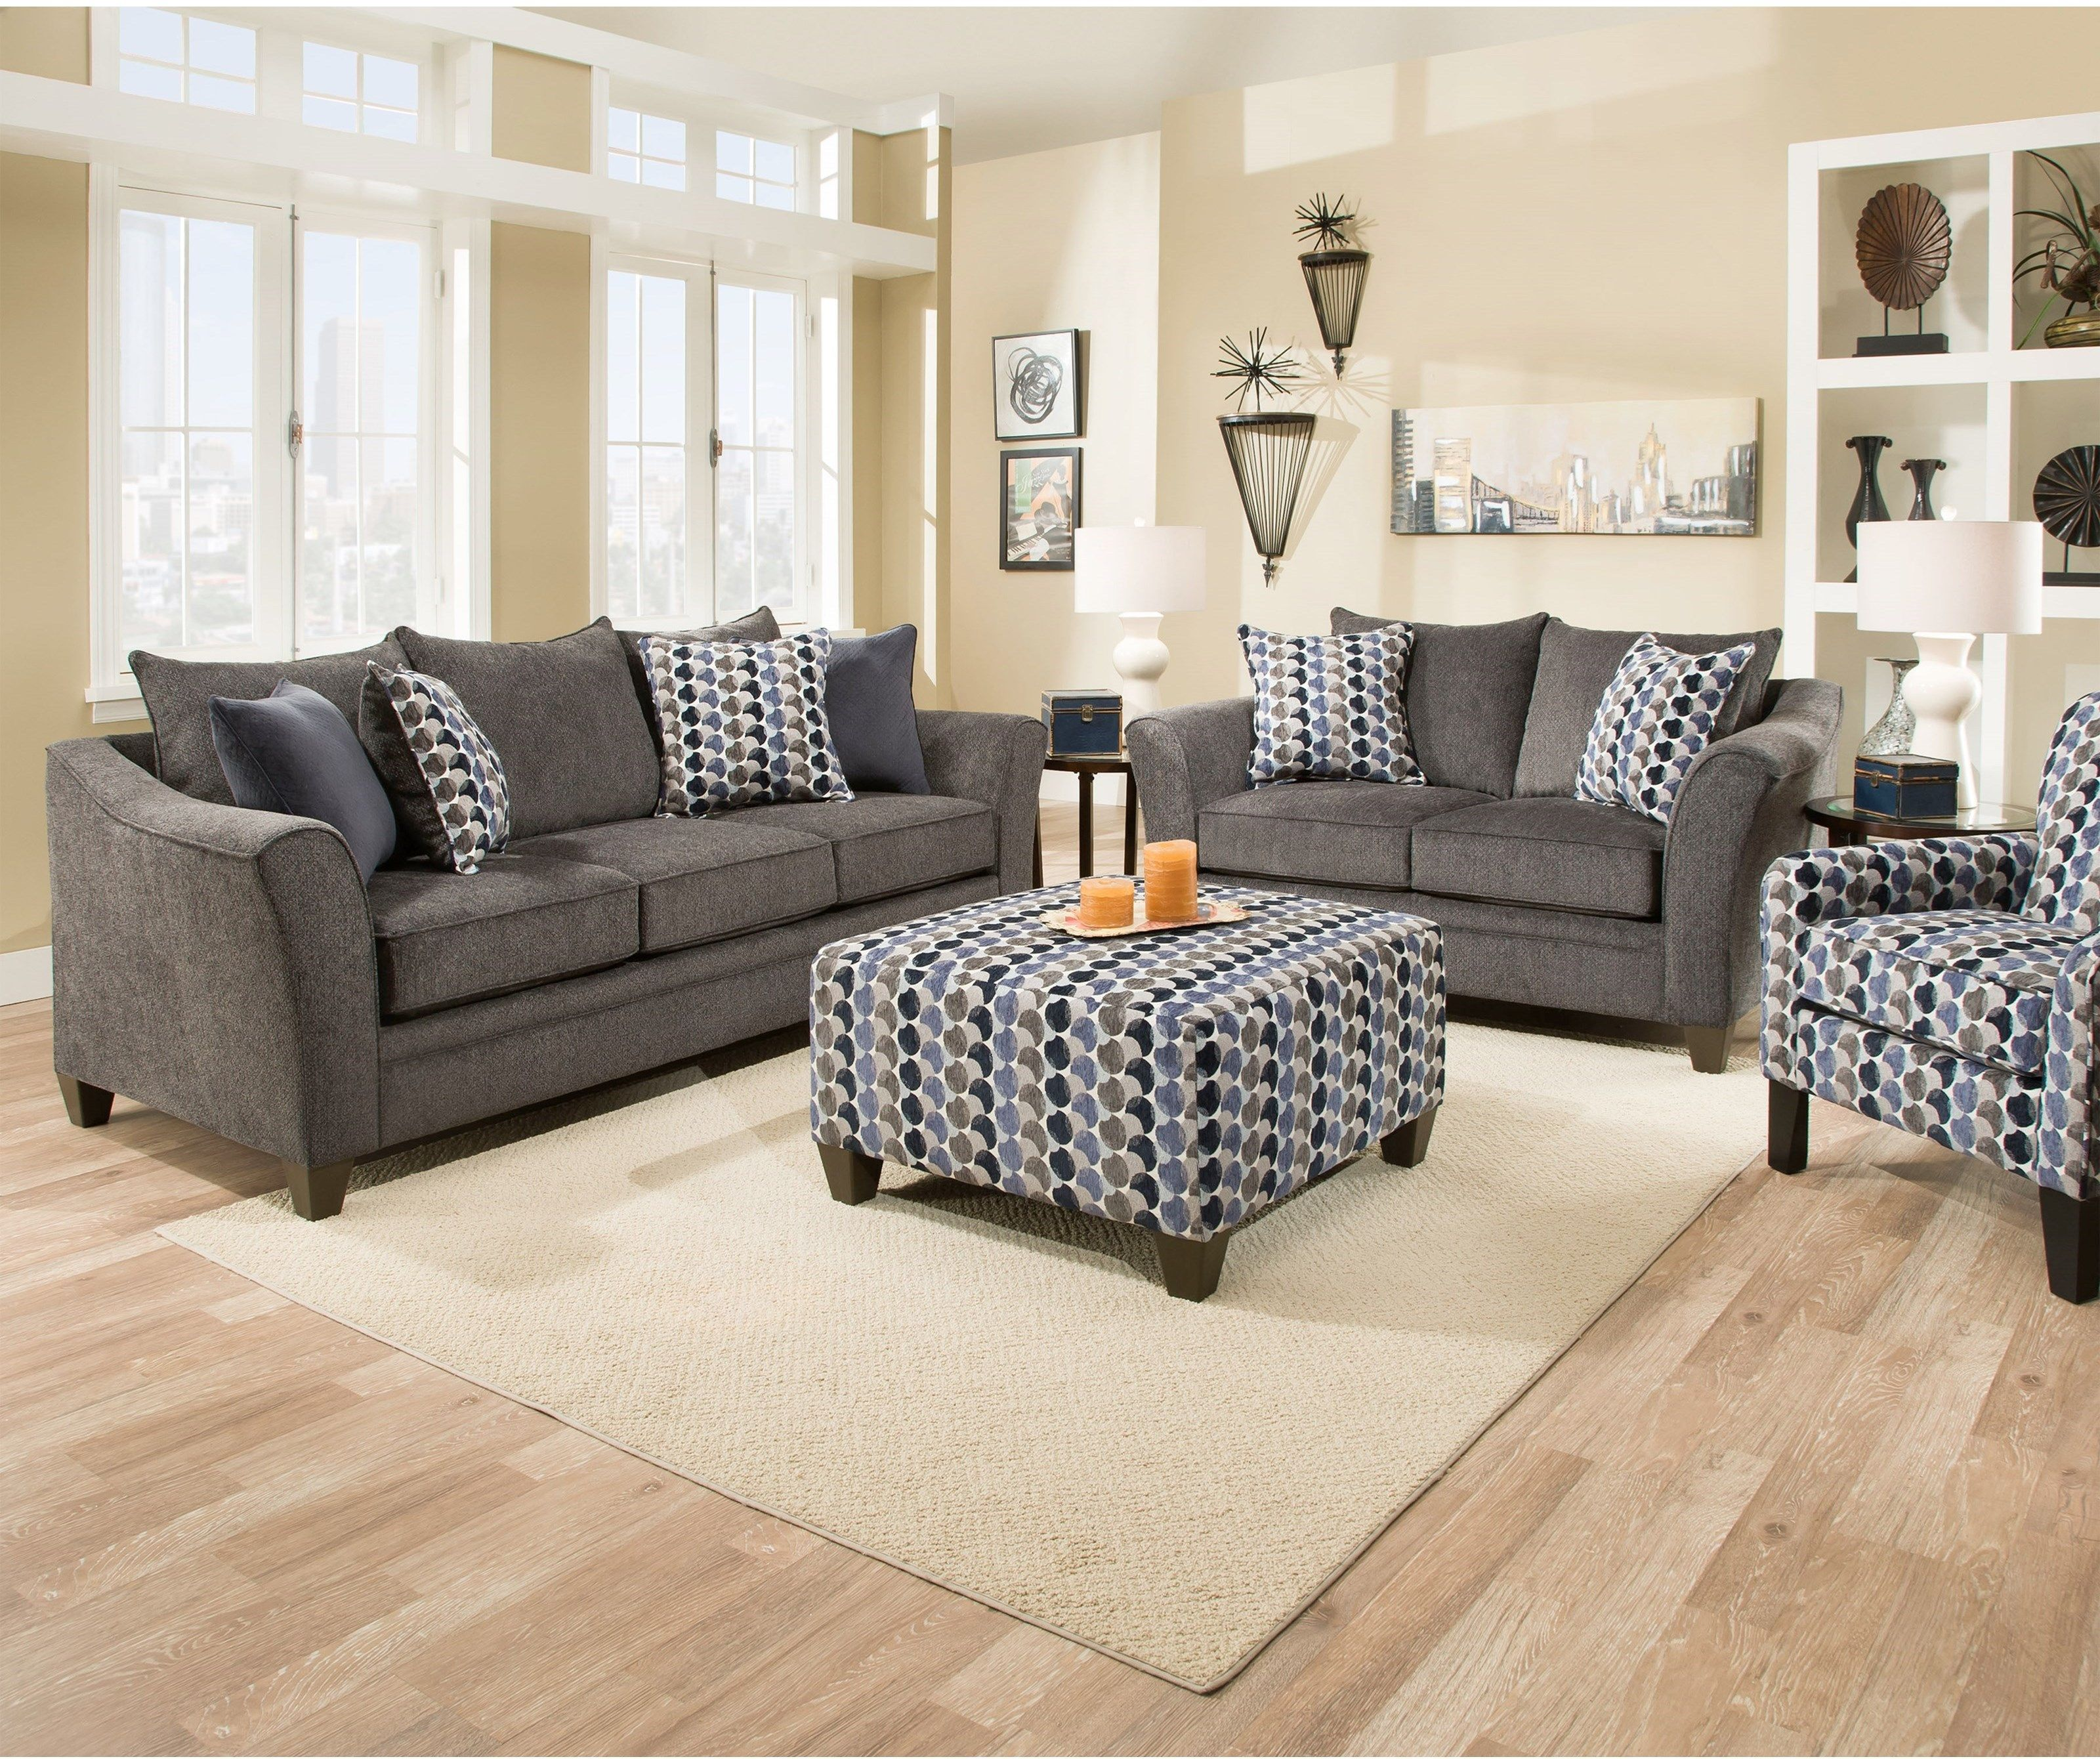 Visit Either Of Furniture Clearance Centeru0027s Two Stores; 2649 Randleman  Road Or 4620 W Market St, Greensboro NC, For Discount Mattresses, Living  Room, ...